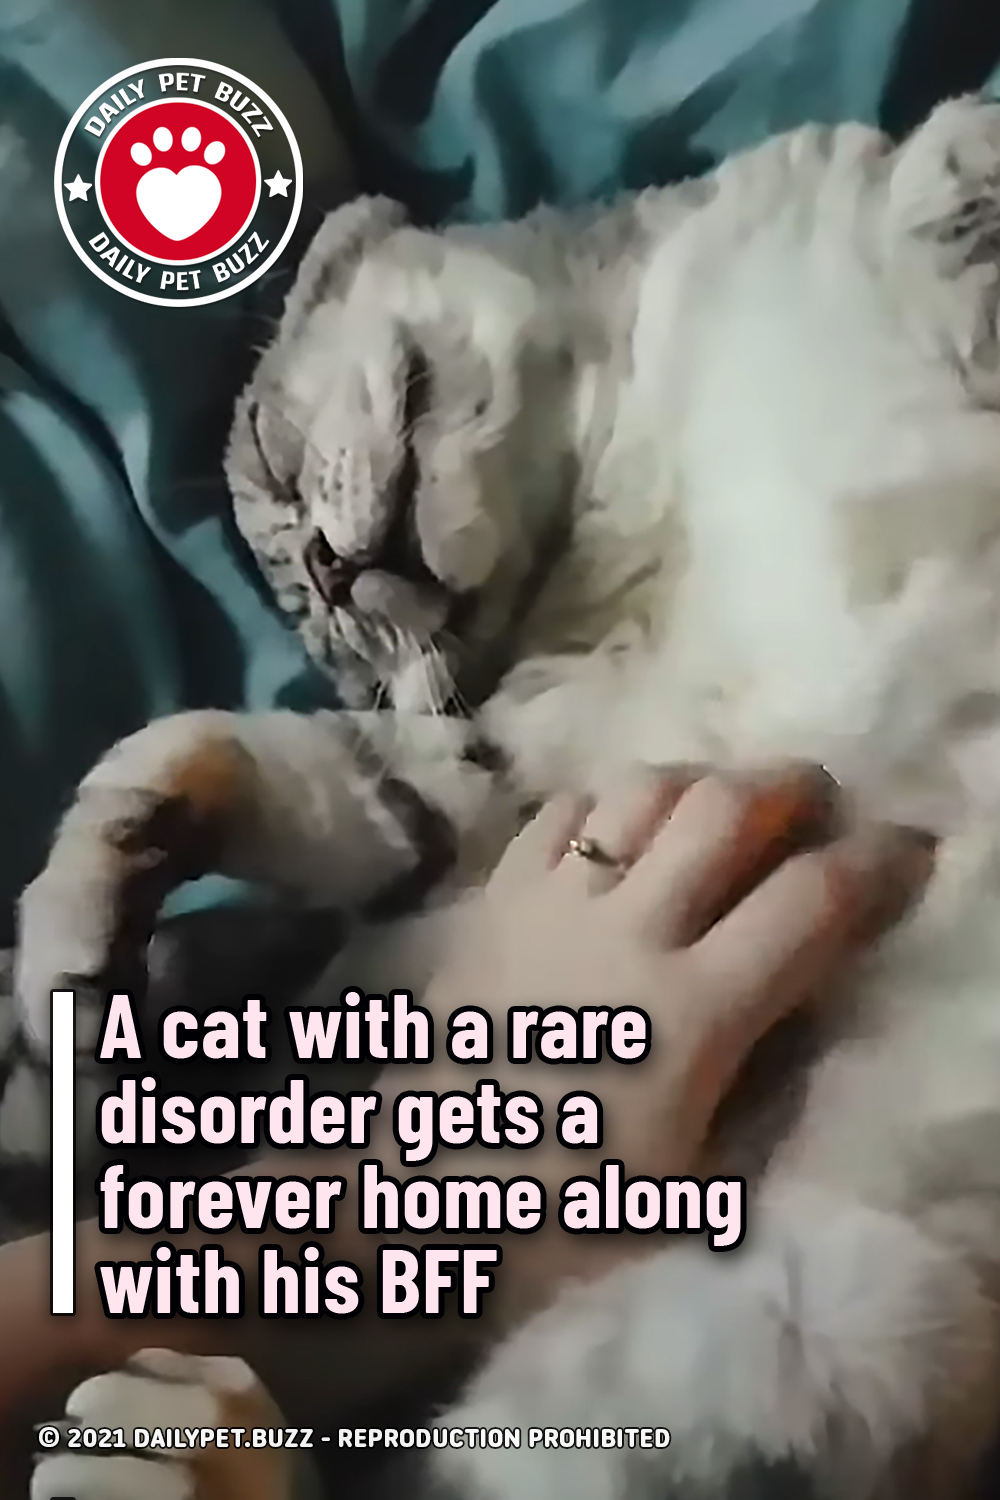 A cat with a rare disorder gets a forever home along with his BFF